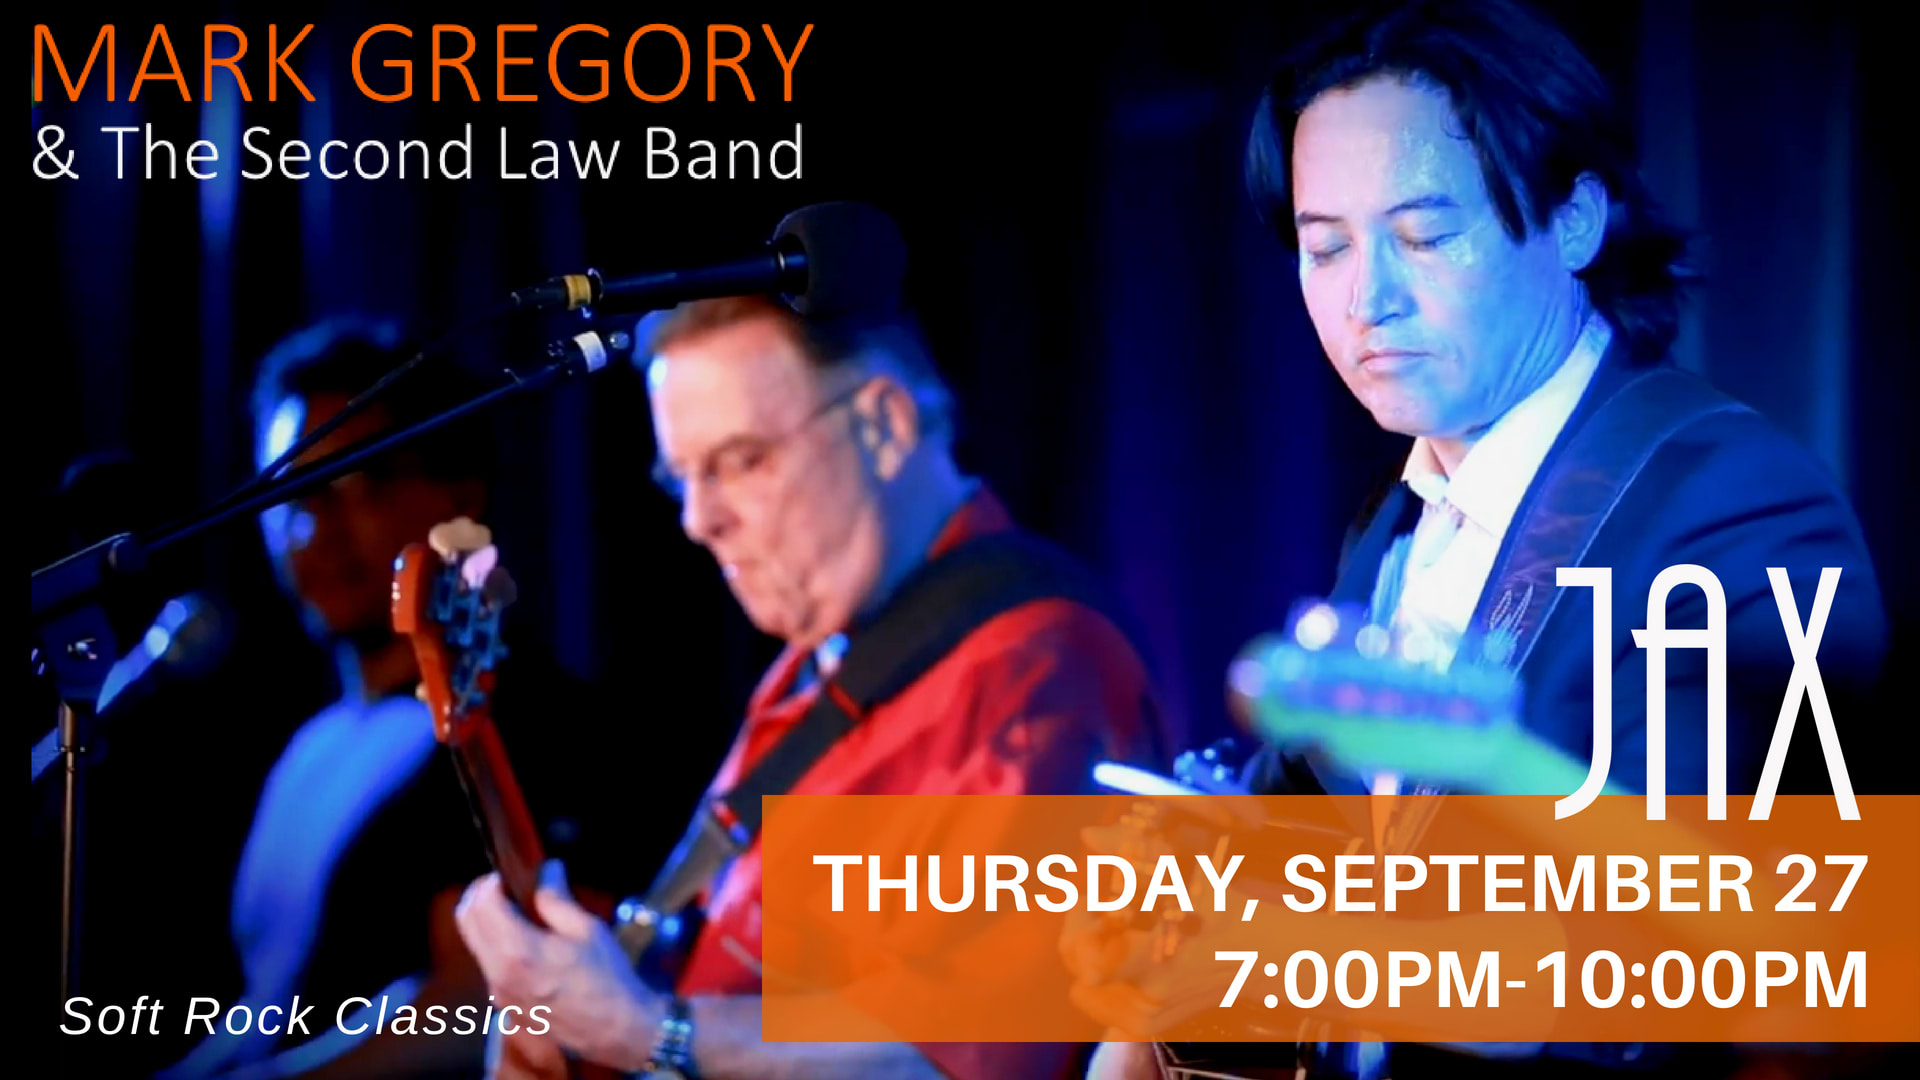 September 27 | MARK GREGORY AND THE SECOND LAW BAND